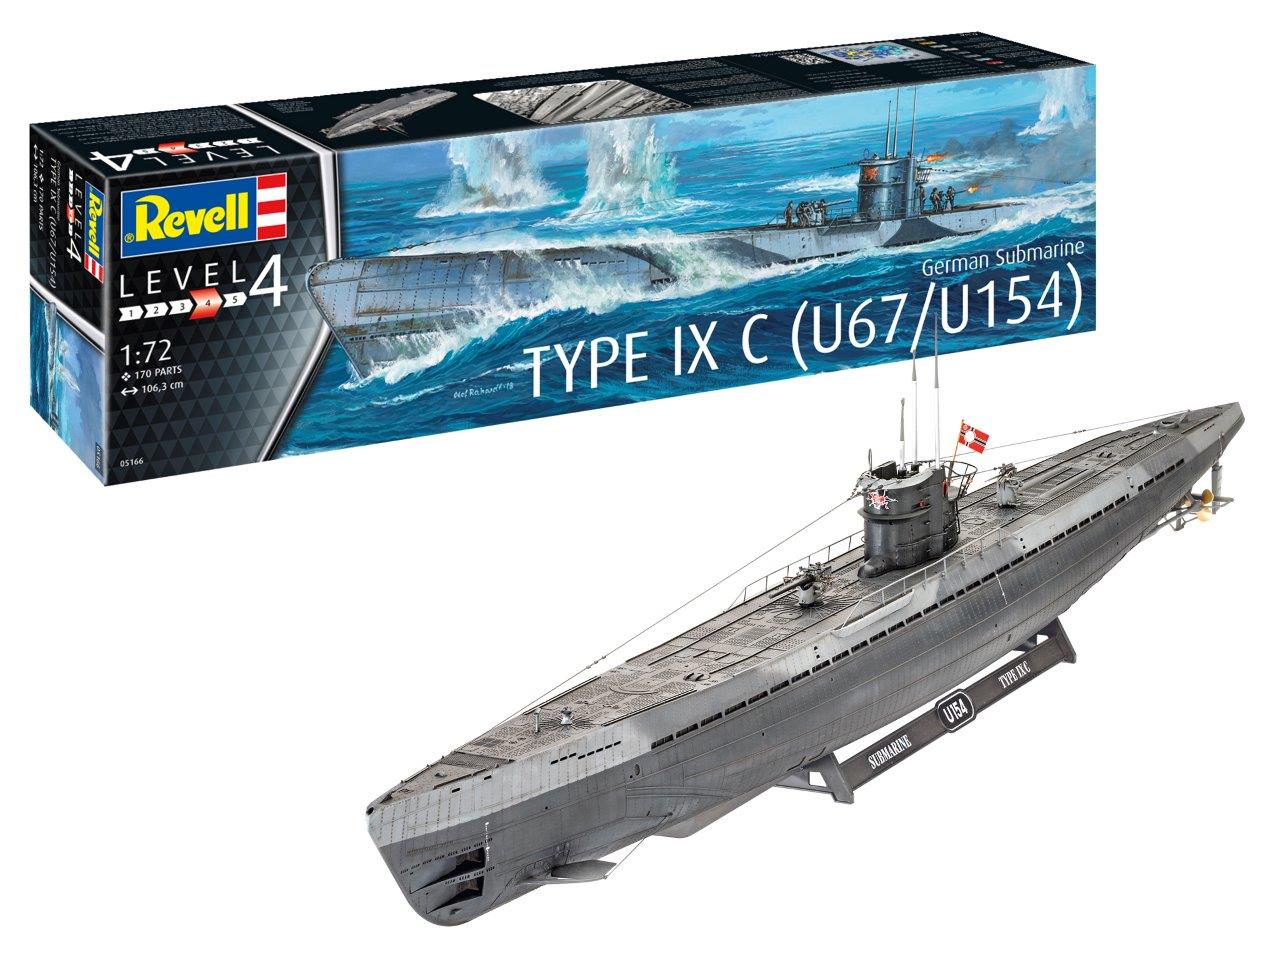 description german submarine type ixc early turret due september 2019 manufacturer revell code number rv5166 scale 1 72 item type ship kits  [ 1280 x 960 Pixel ]